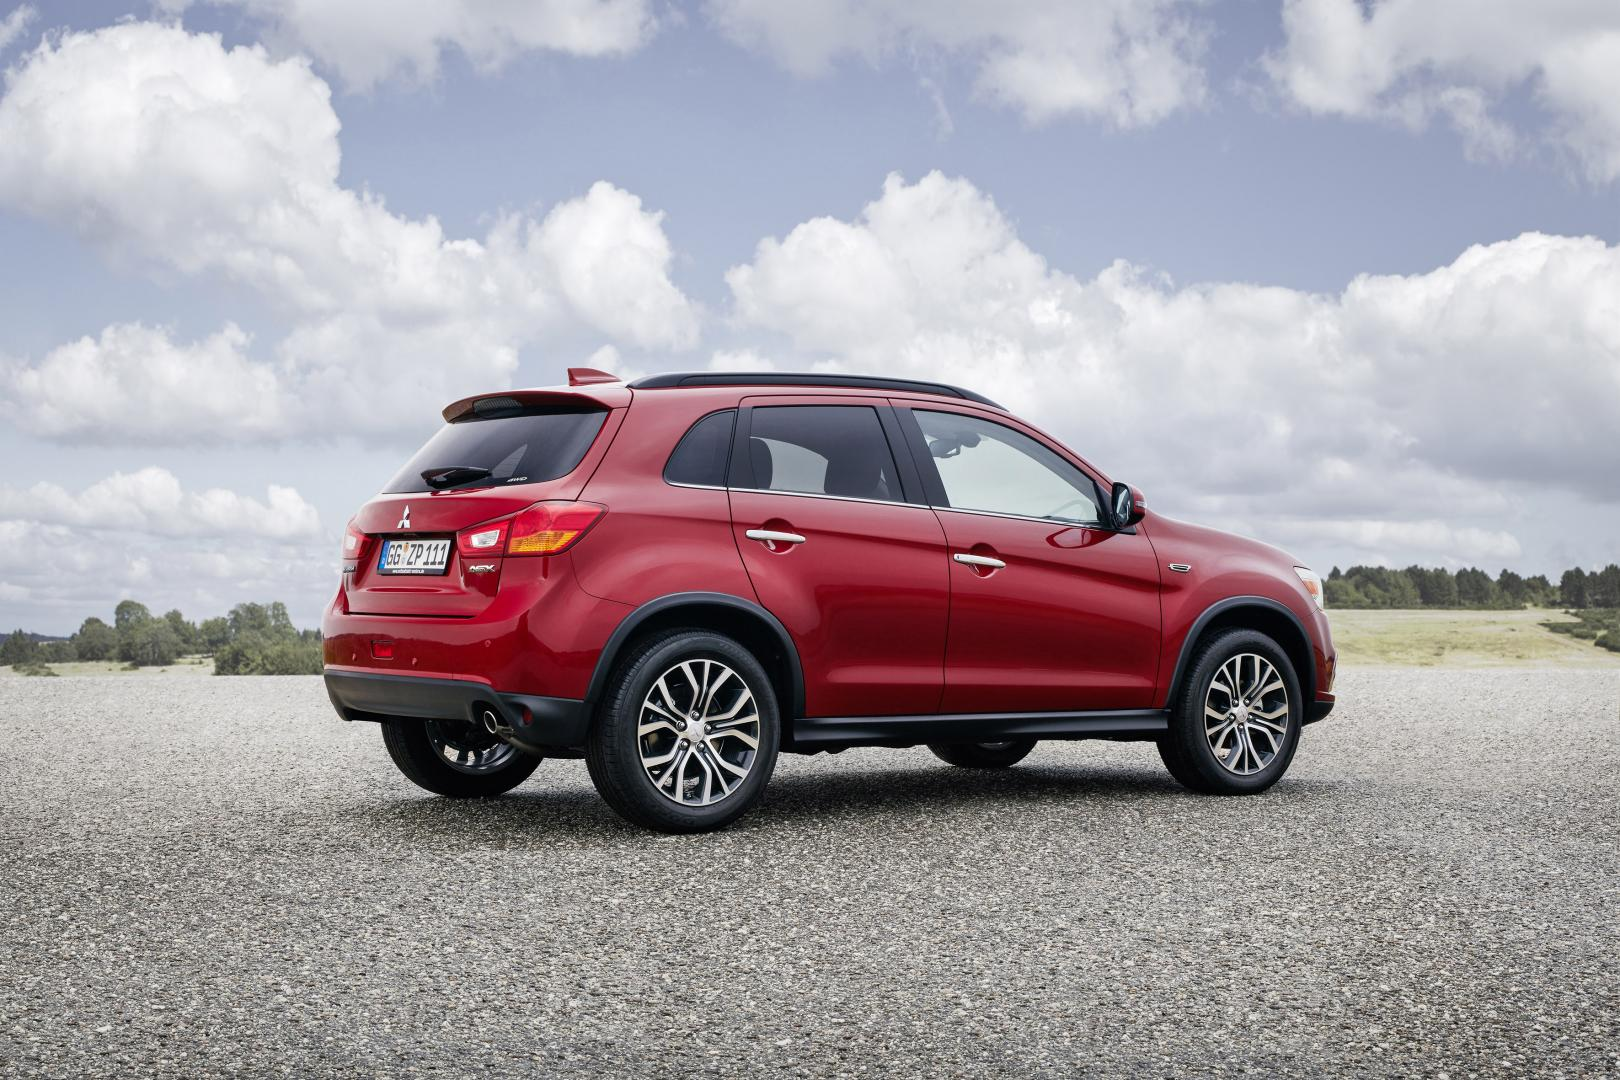 mitsubishi ASX 1.6 mitec cleartec instyle test 2017 (1)mitsubishi ASX 1.6 mitec cleartec instyle test 2017 (1)